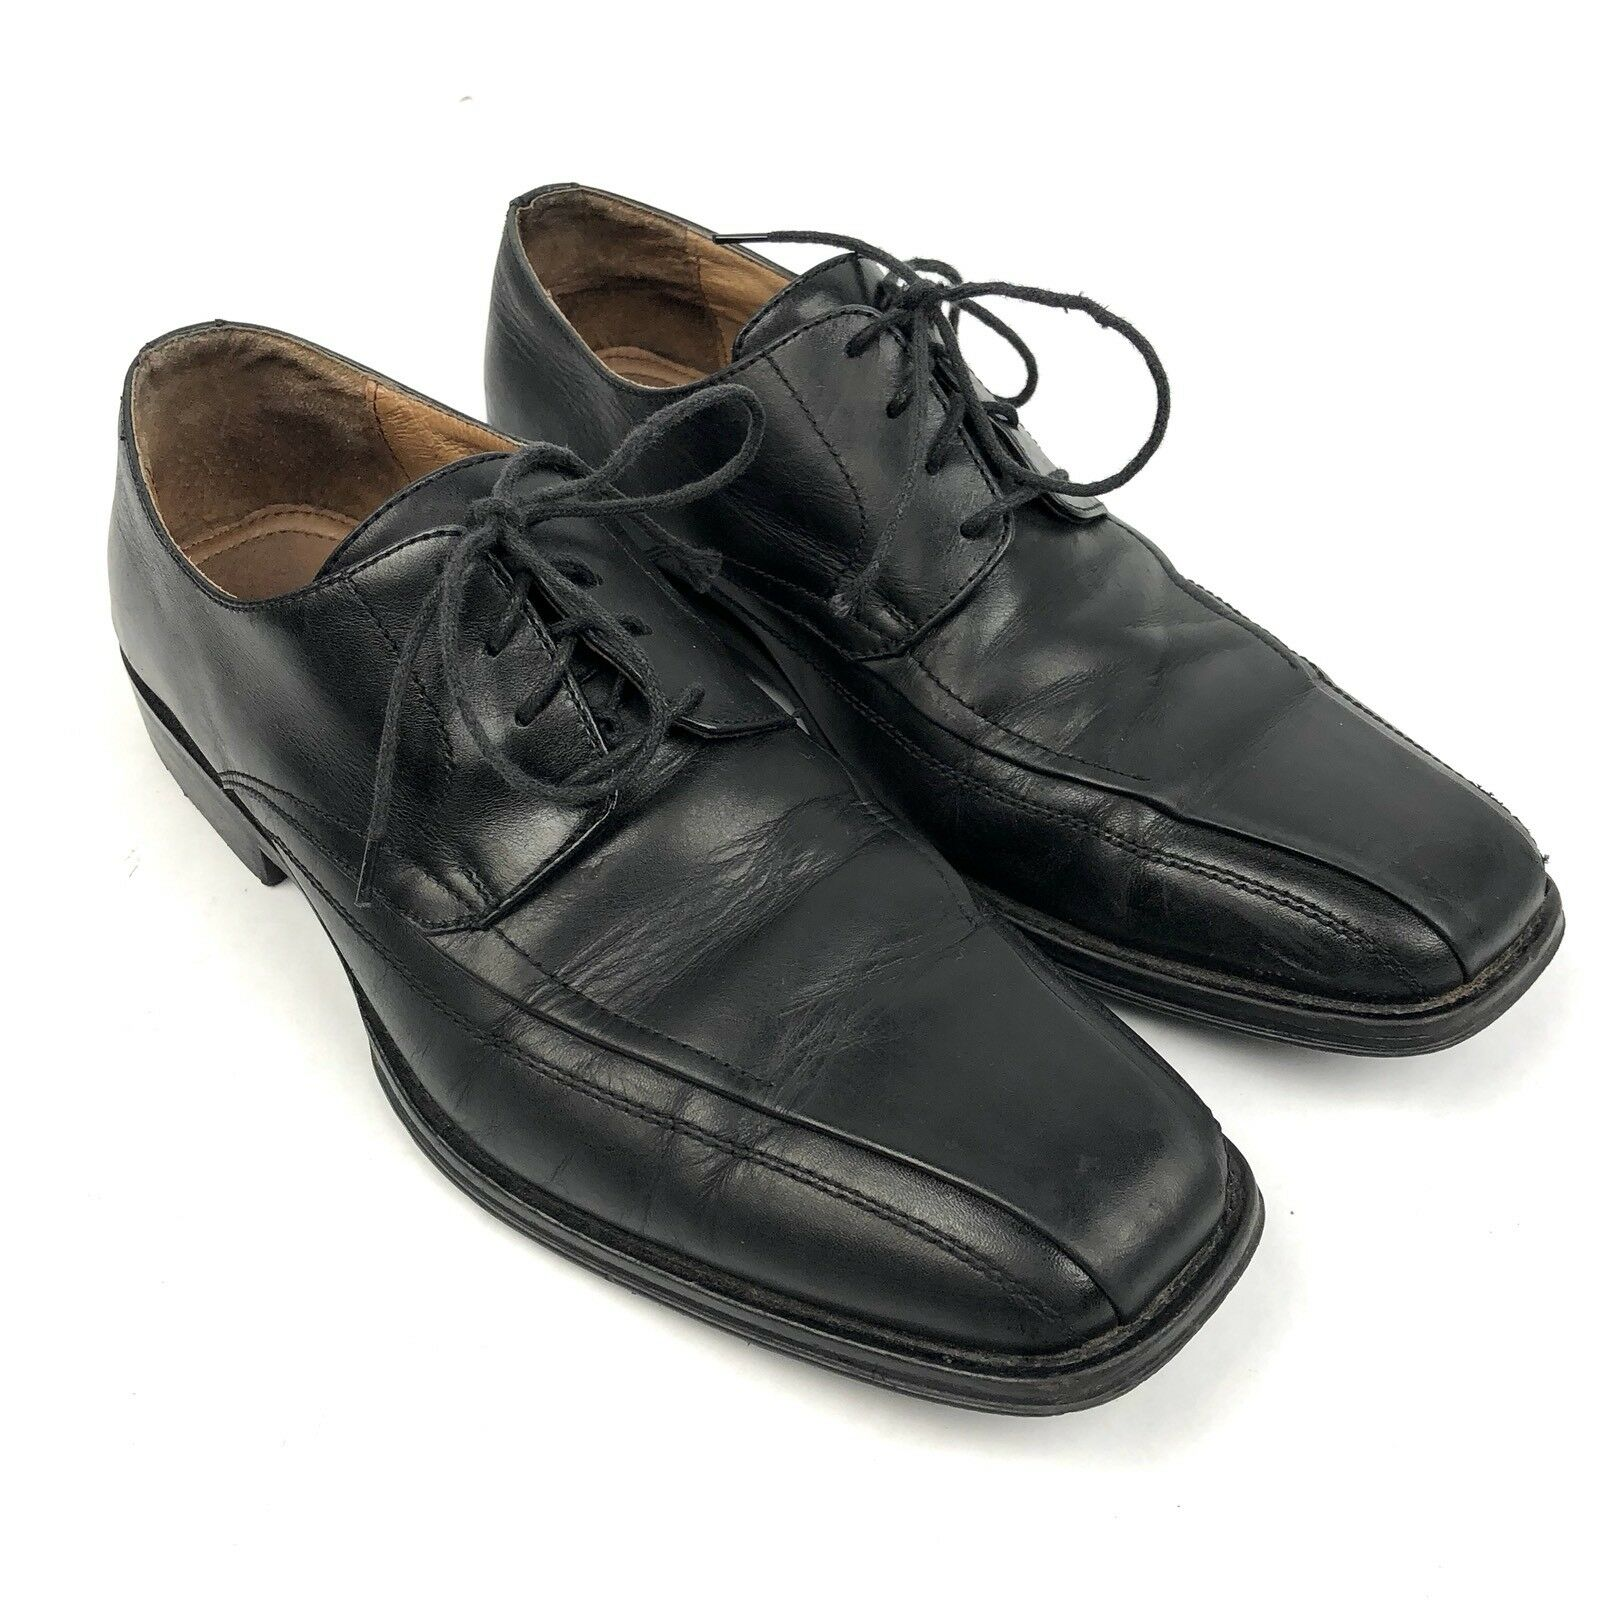 Johnston & Murphy 9.5 D Men's Dress shoes Black Leather Lace Up Oxford